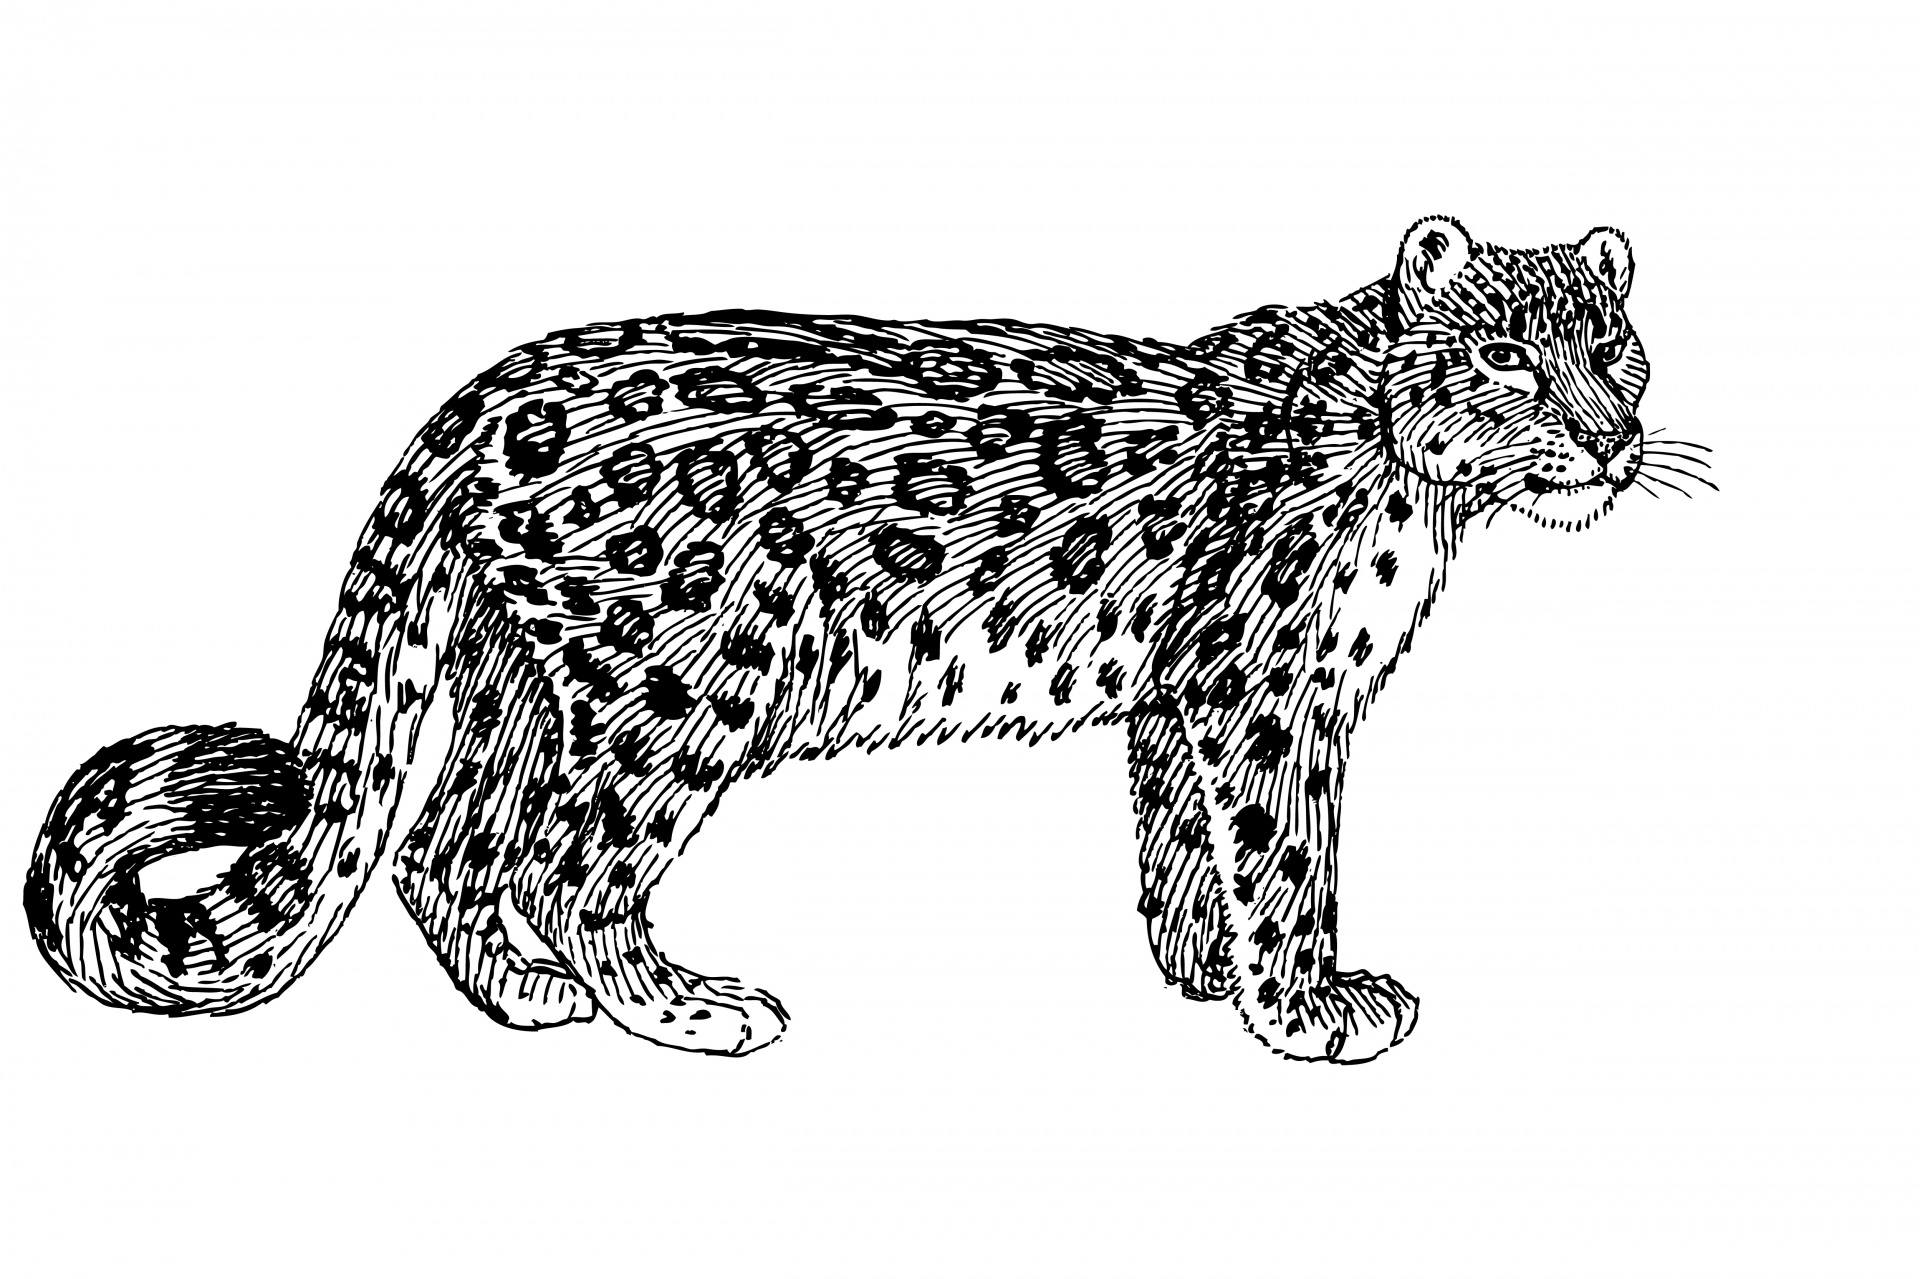 Cat in snow clipart black and white vector freeuse download Snow leopard,leopard,feline,cat,big - free photo from needpix.com vector freeuse download